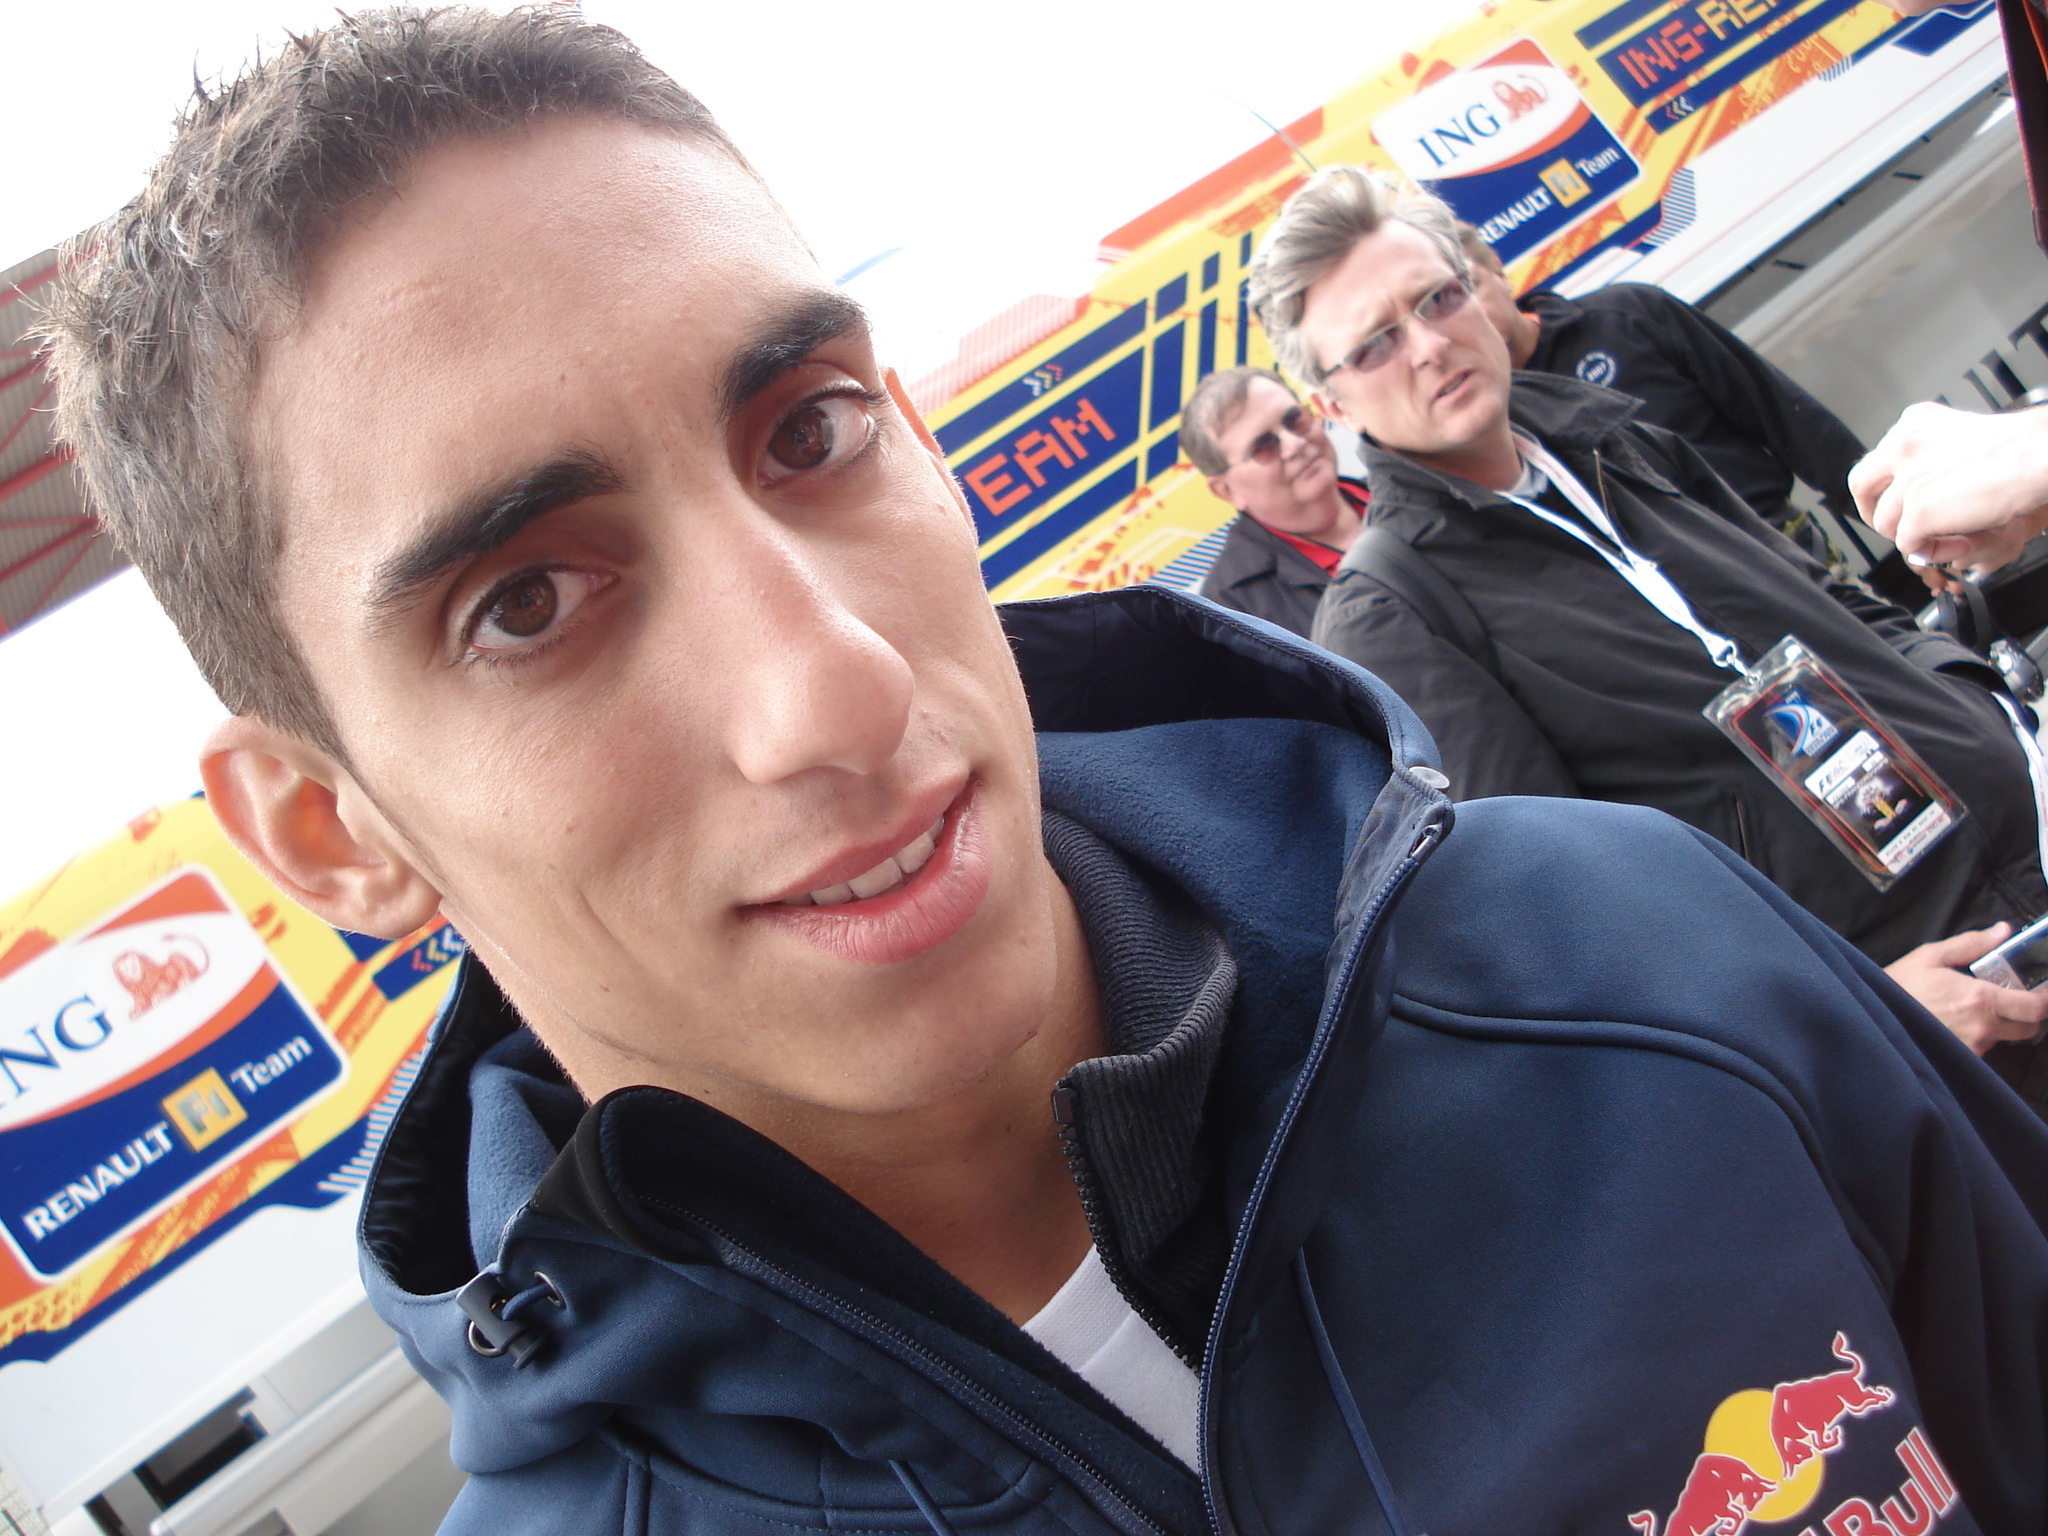 The 28-year old son of father (?) and mother(?), 180 cm tall Sébastien Buemi in 2017 photo